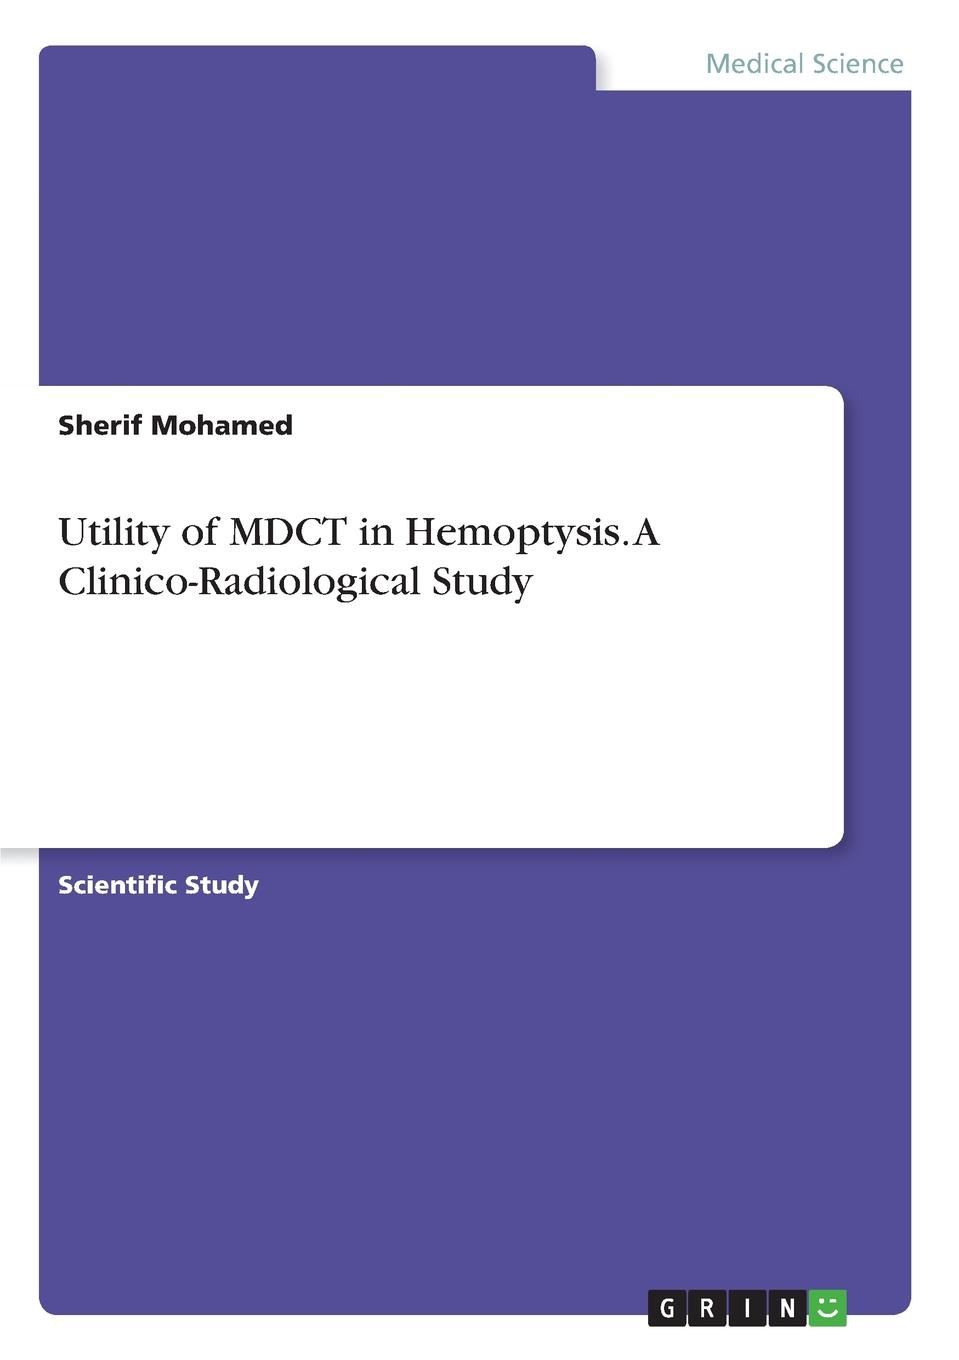 Sherif Mohamed Utility of MDCT in Hemoptysis. A Clinico-Radiological Study